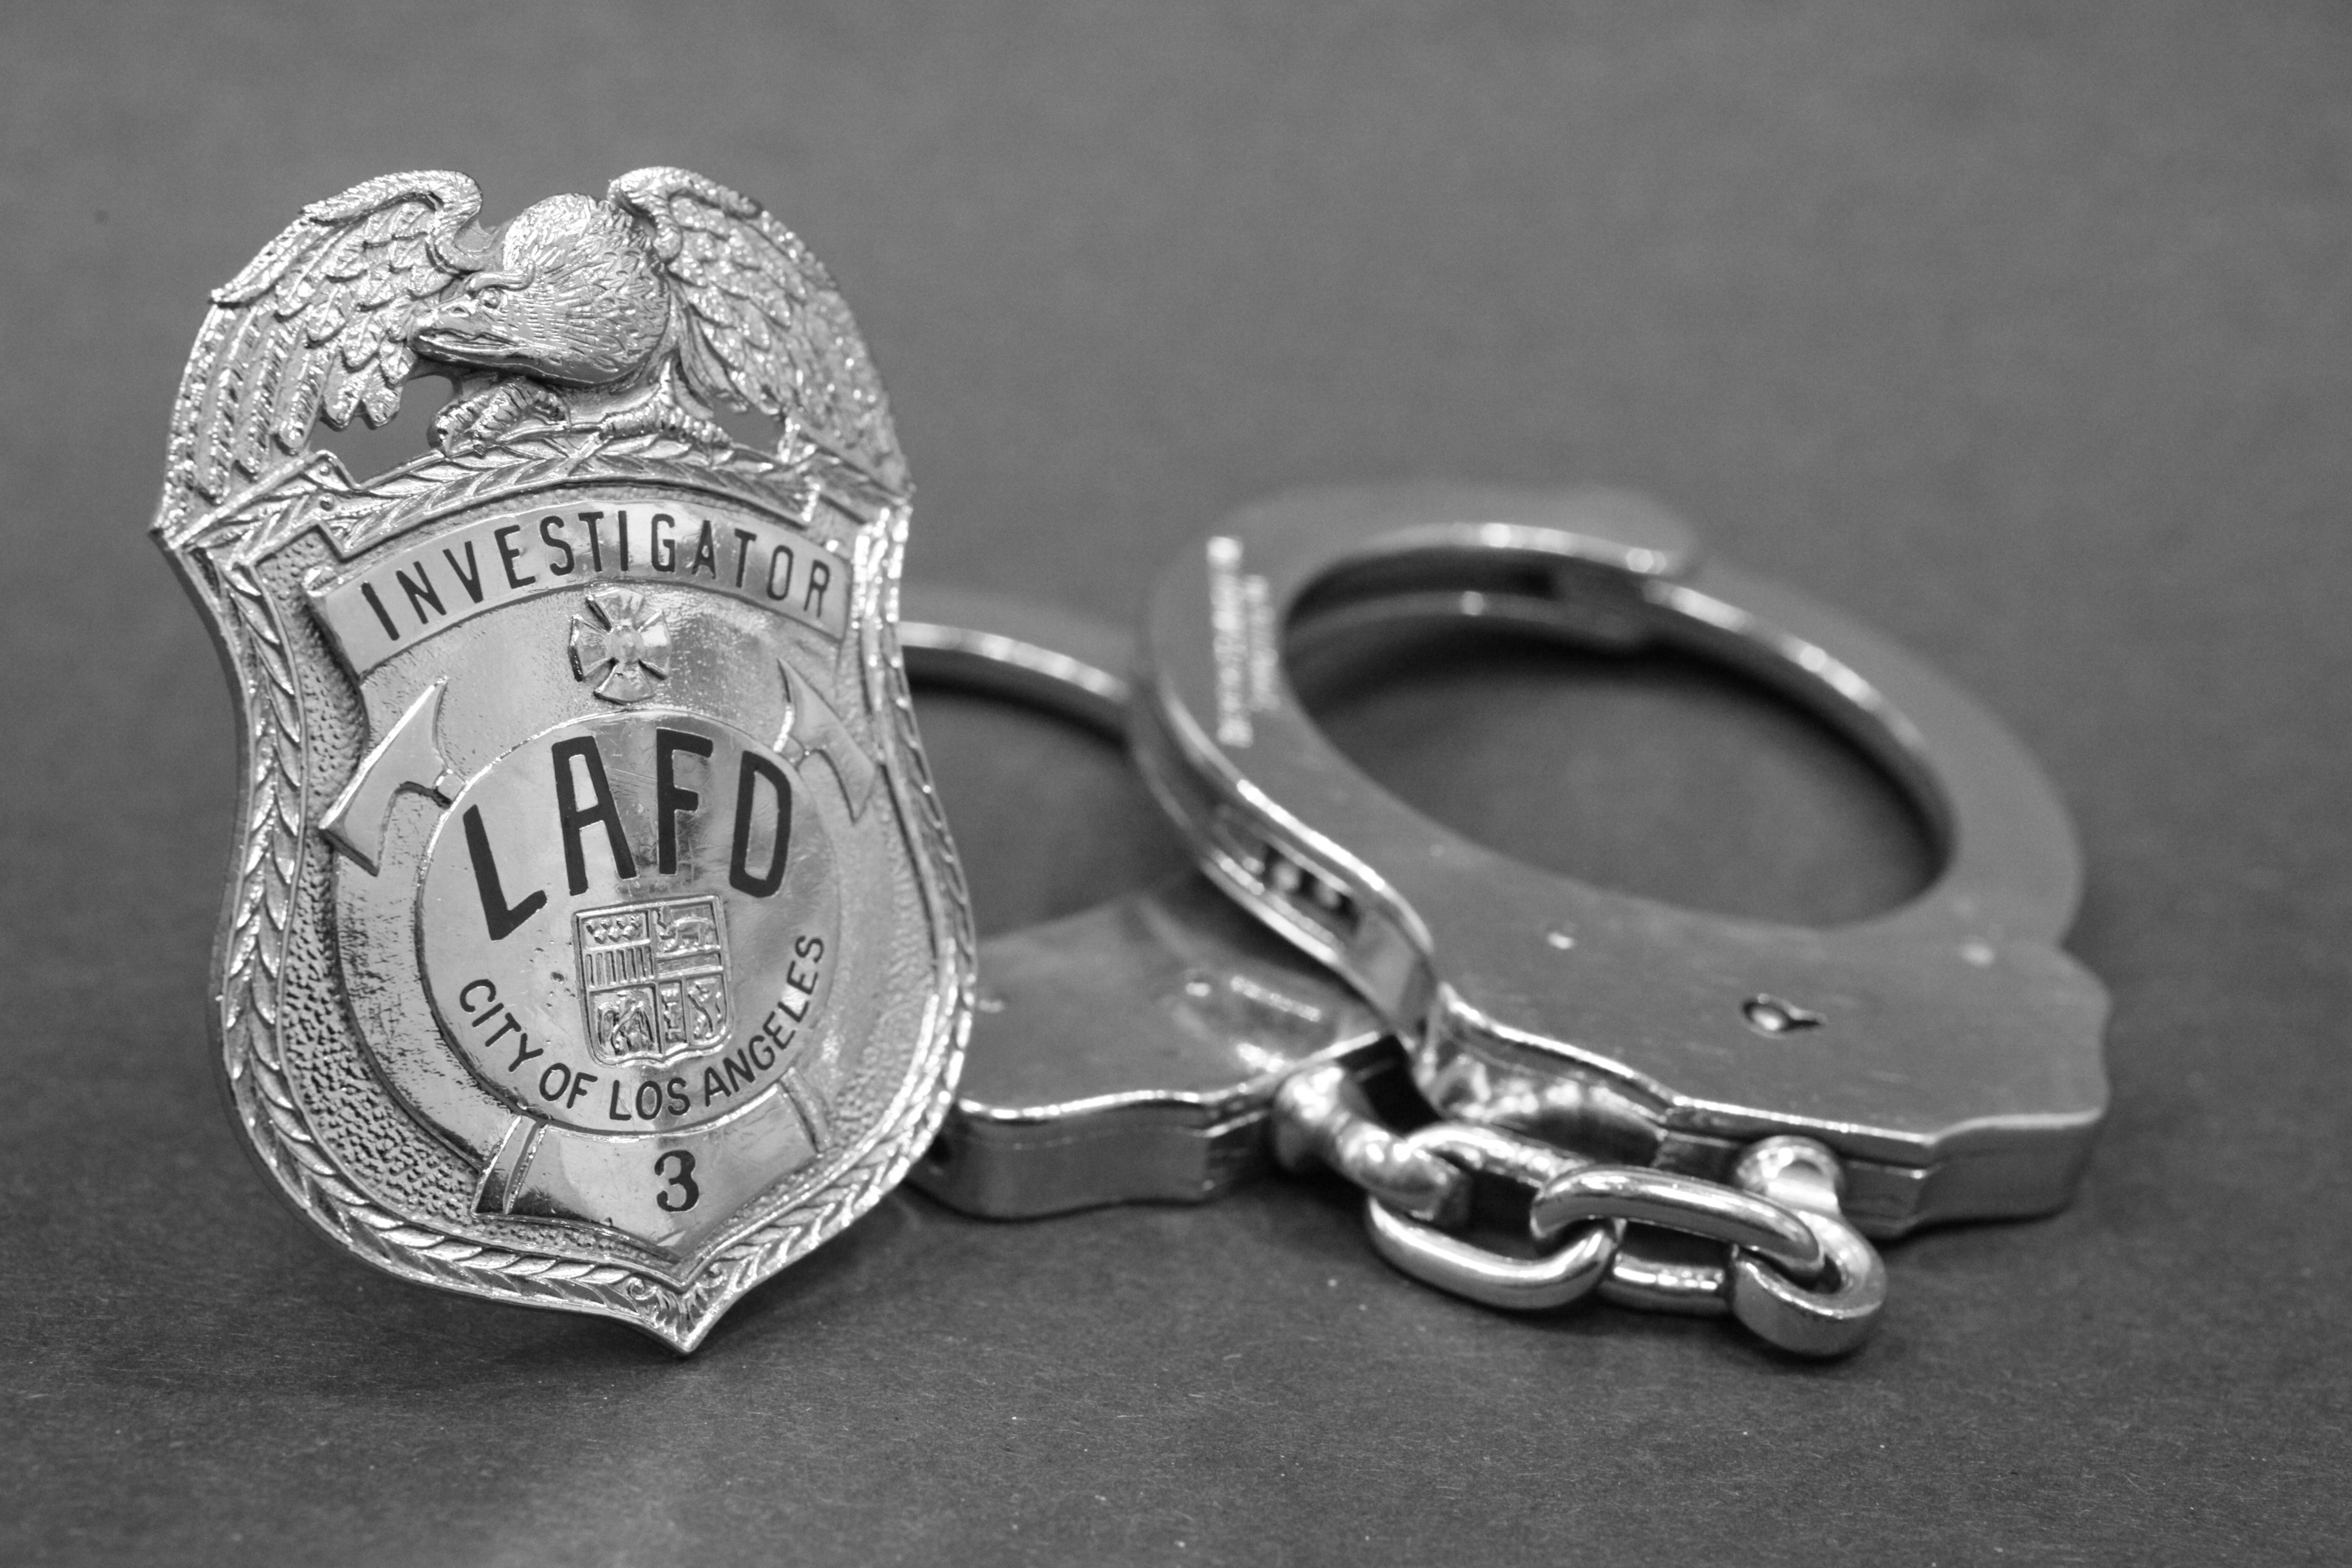 Arson Badge and handcuffs